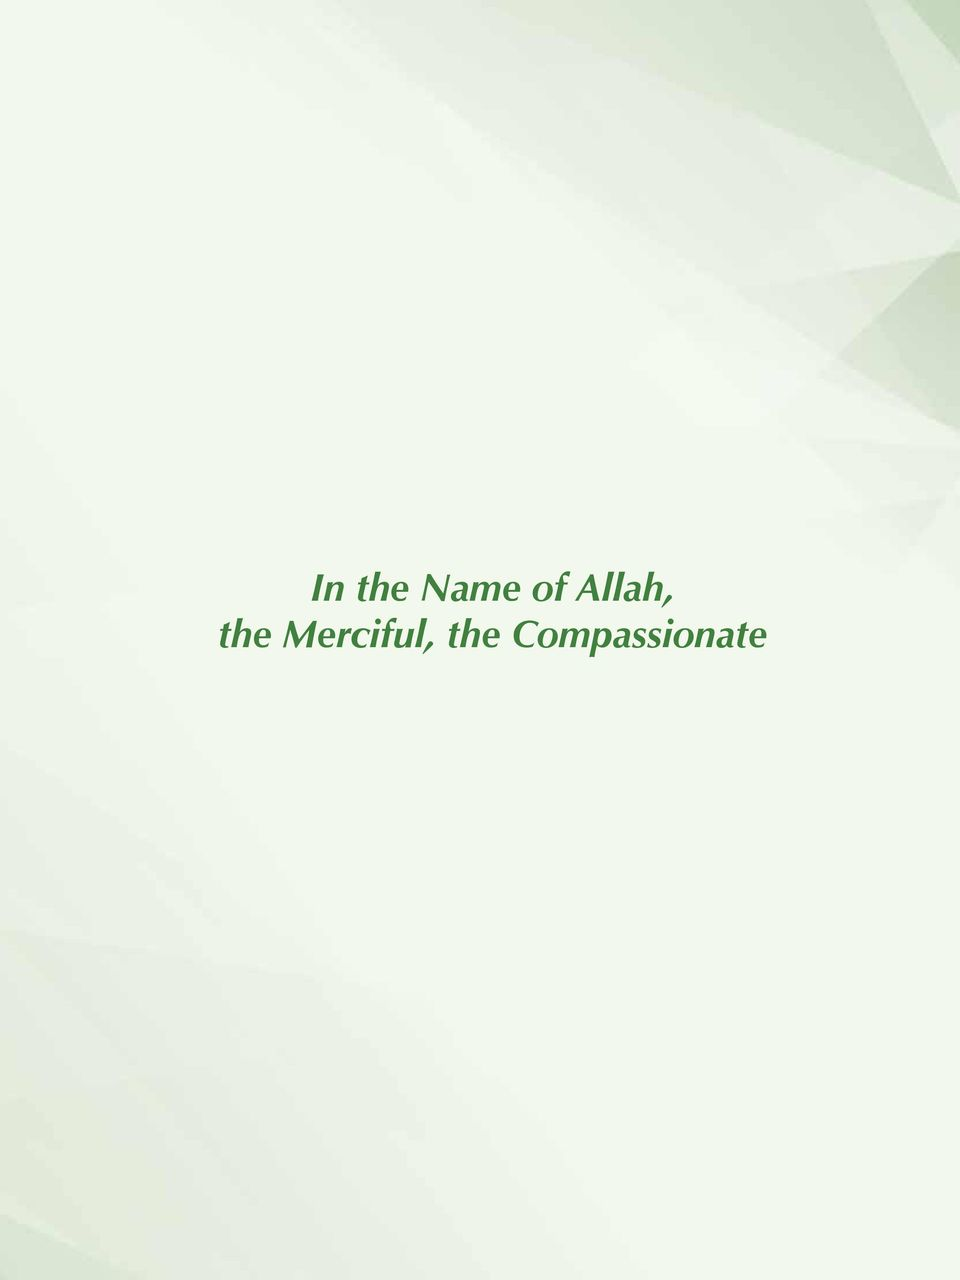 Merciful, the